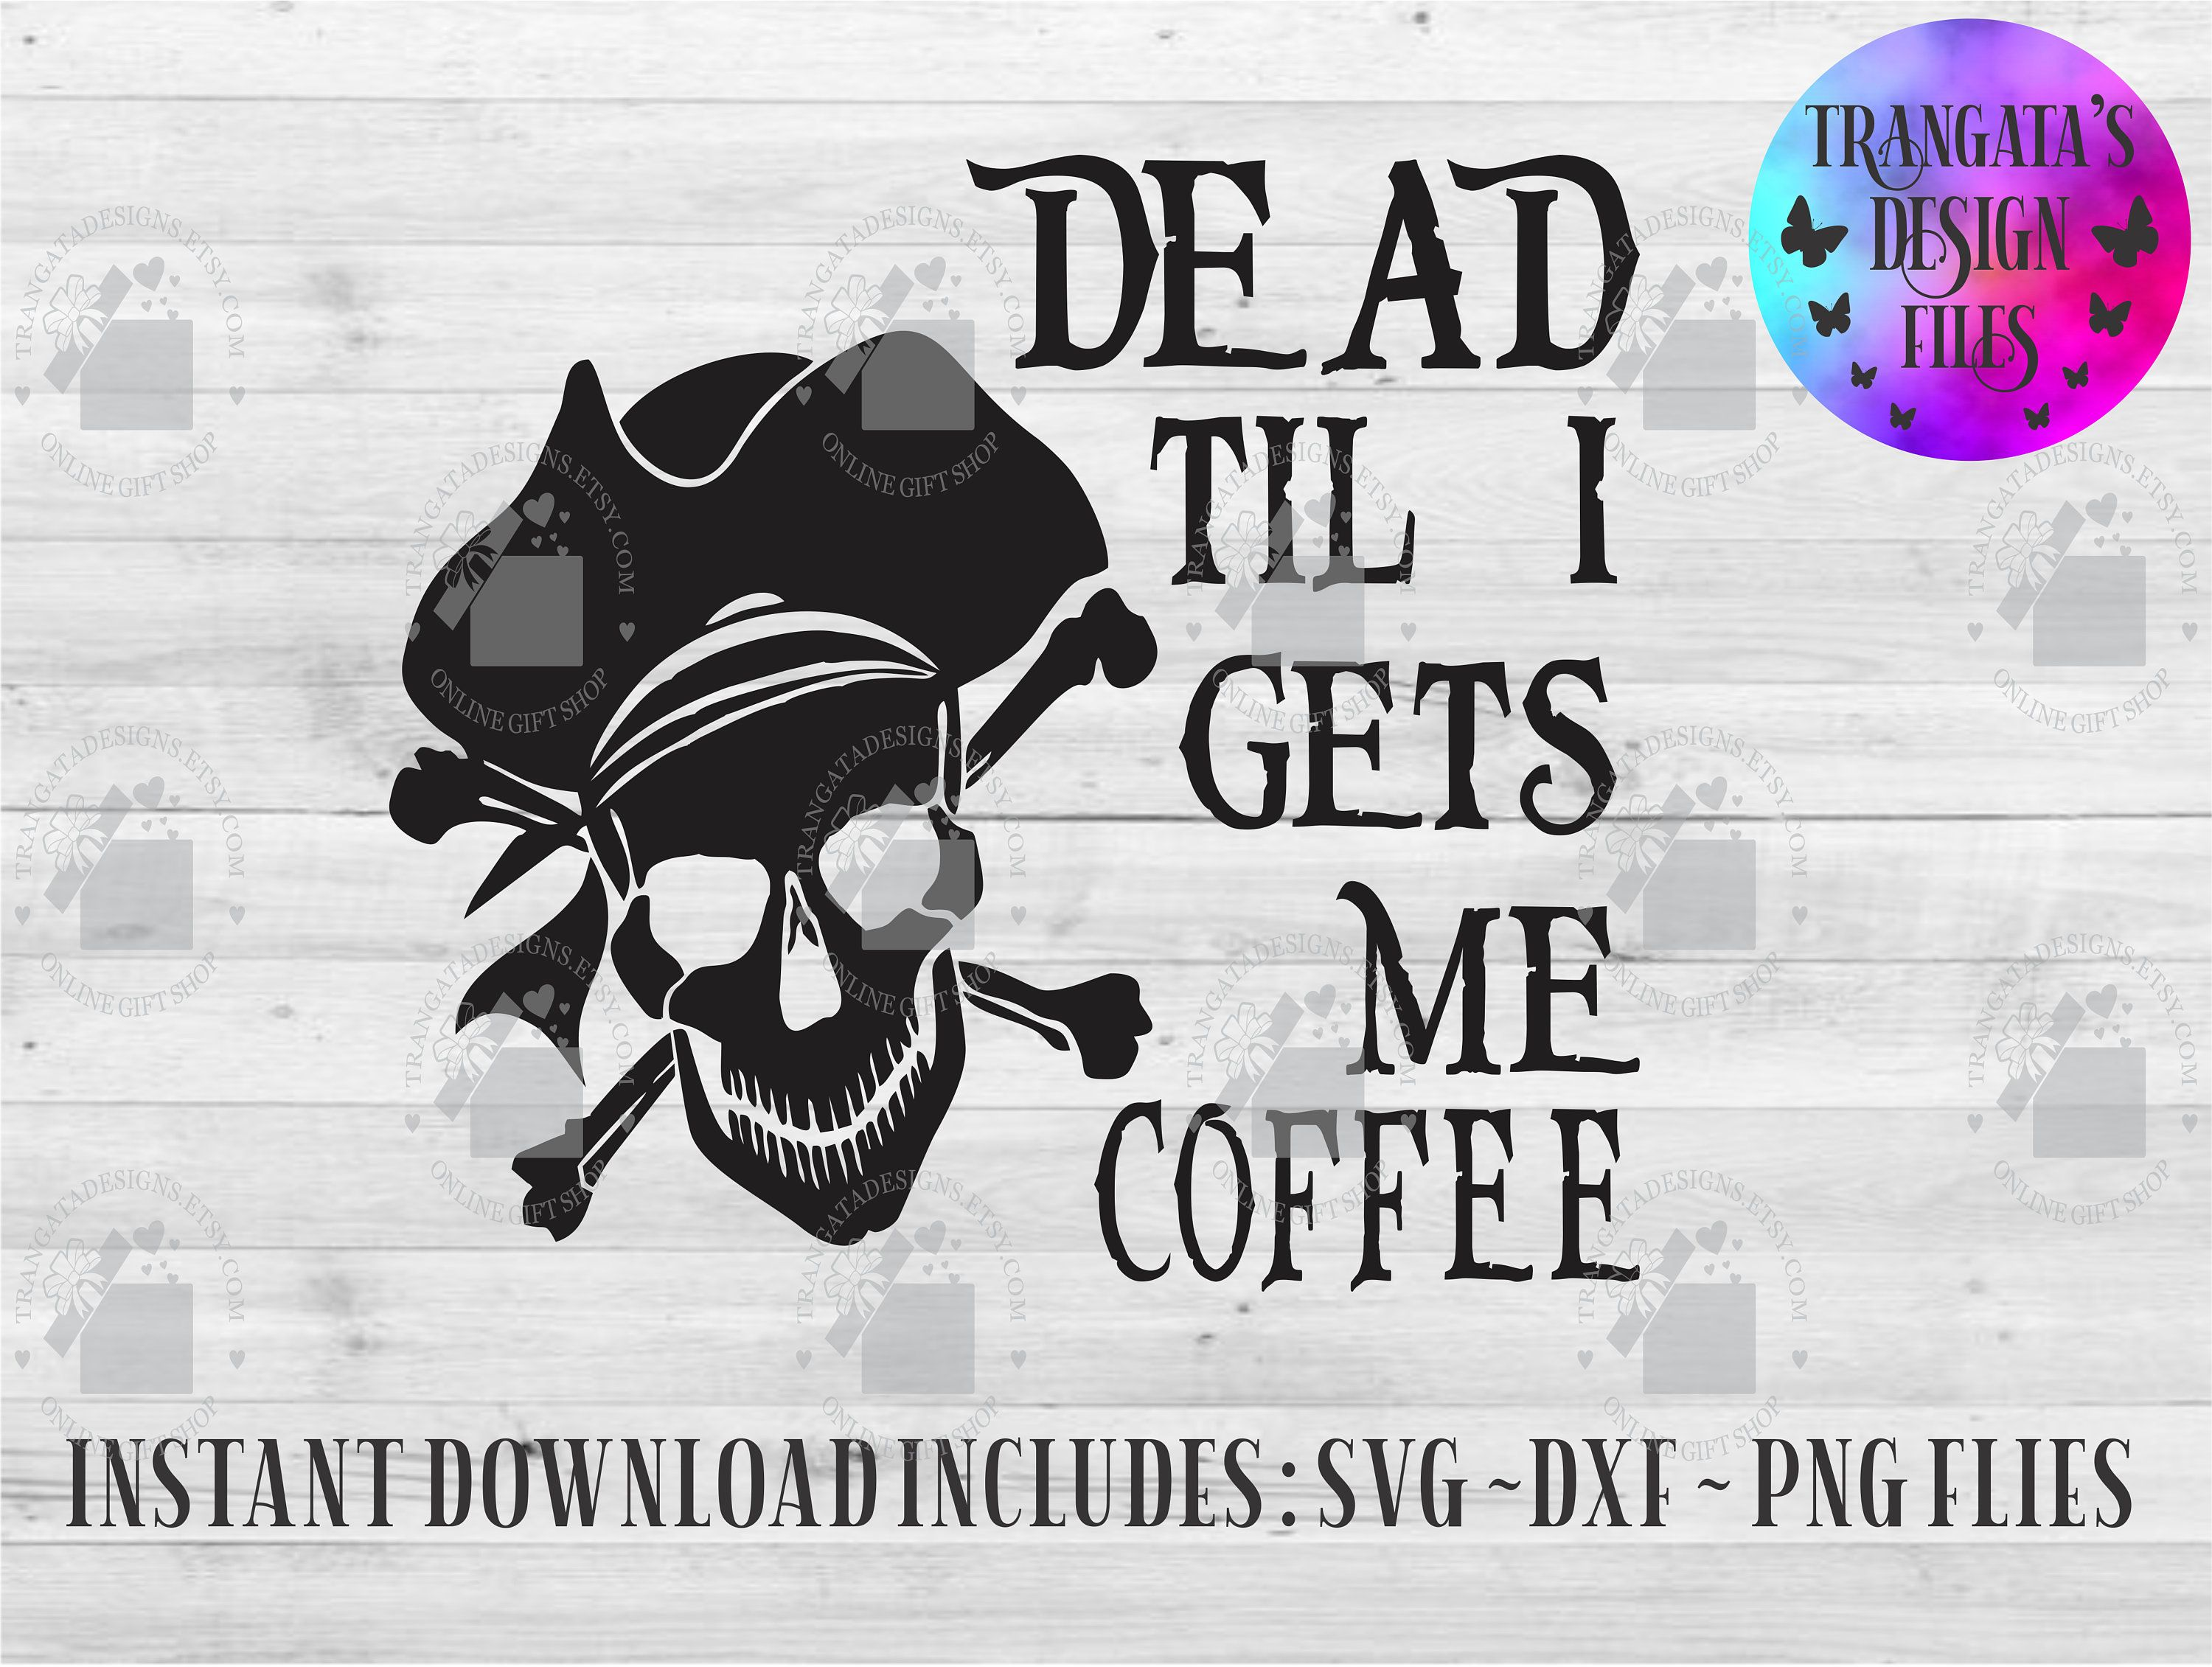 Dead Till I Gets Me Coffee Instant Download, Pirate SVG, Dead Till I gets Me Coffee SVG, Funny Svg, Coffee SVG, Pirate